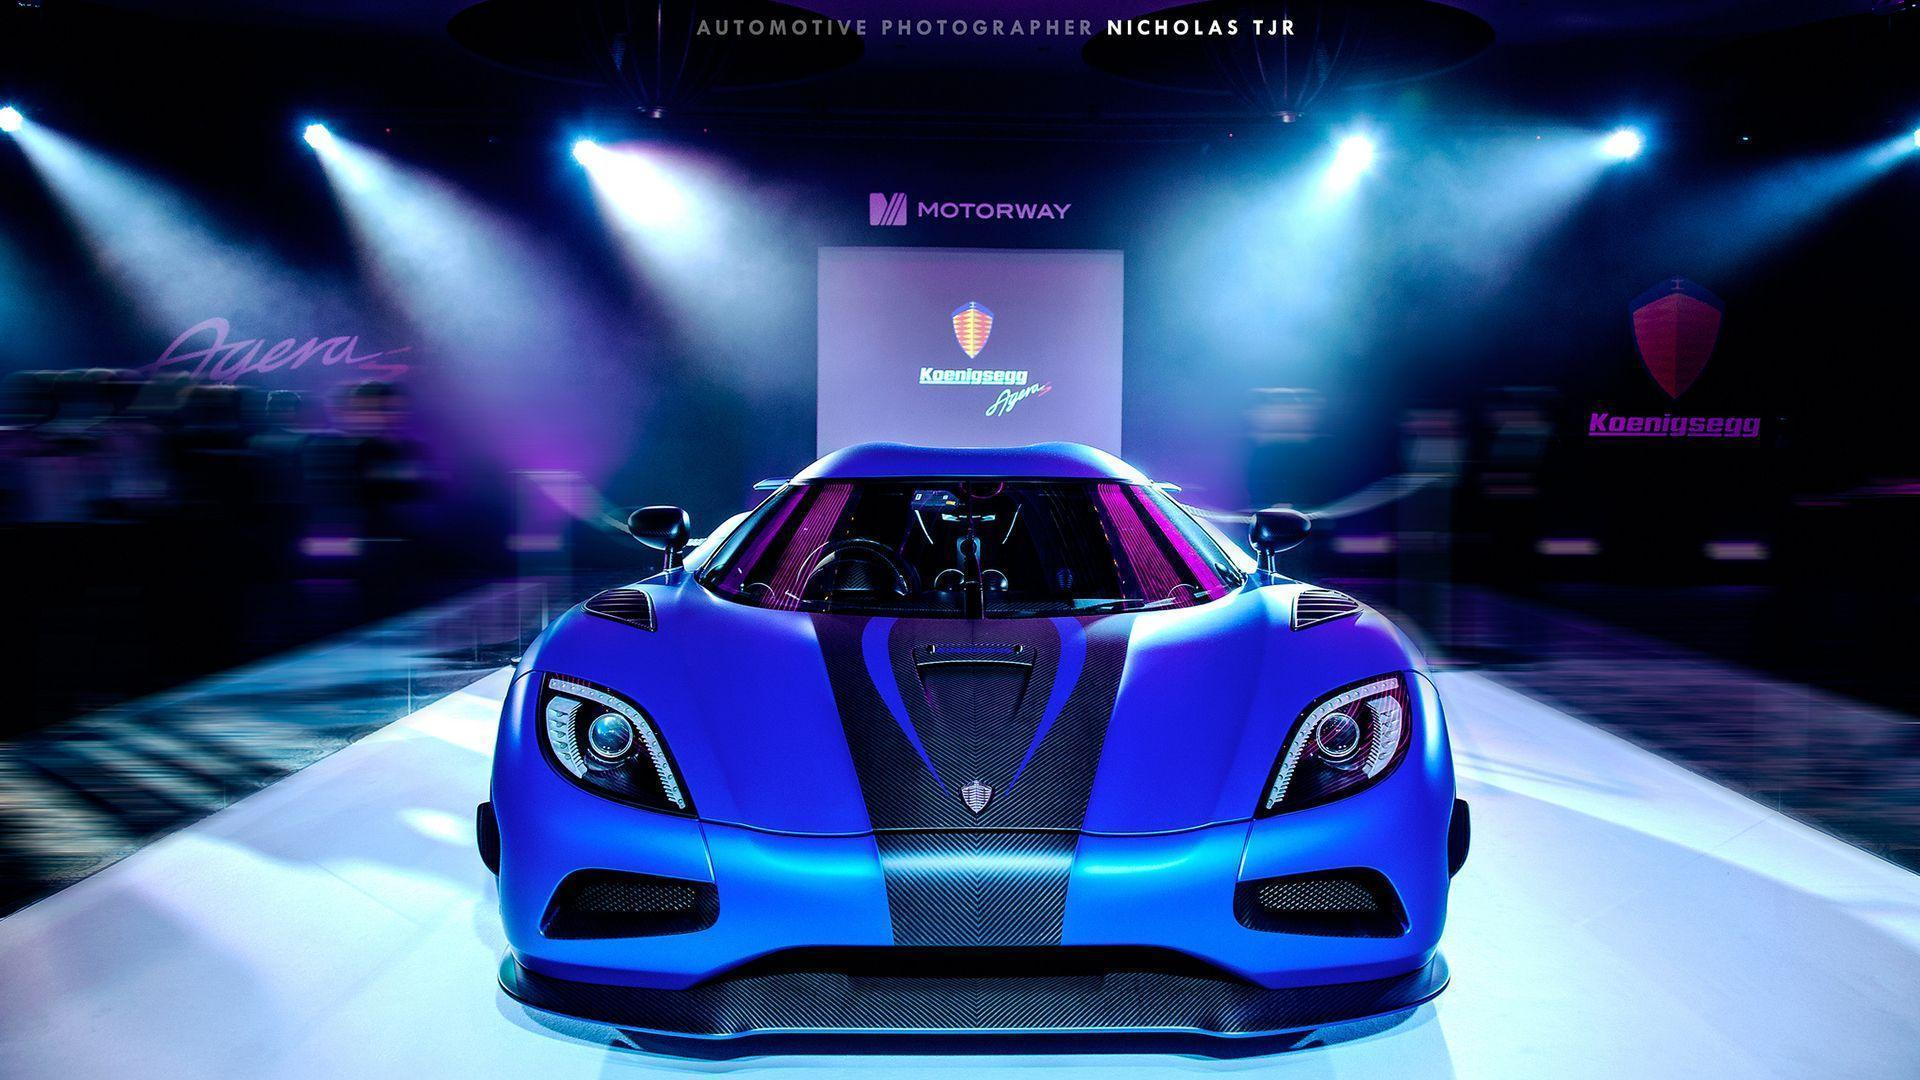 Agera R Wallpapers - Wallpaper Cave